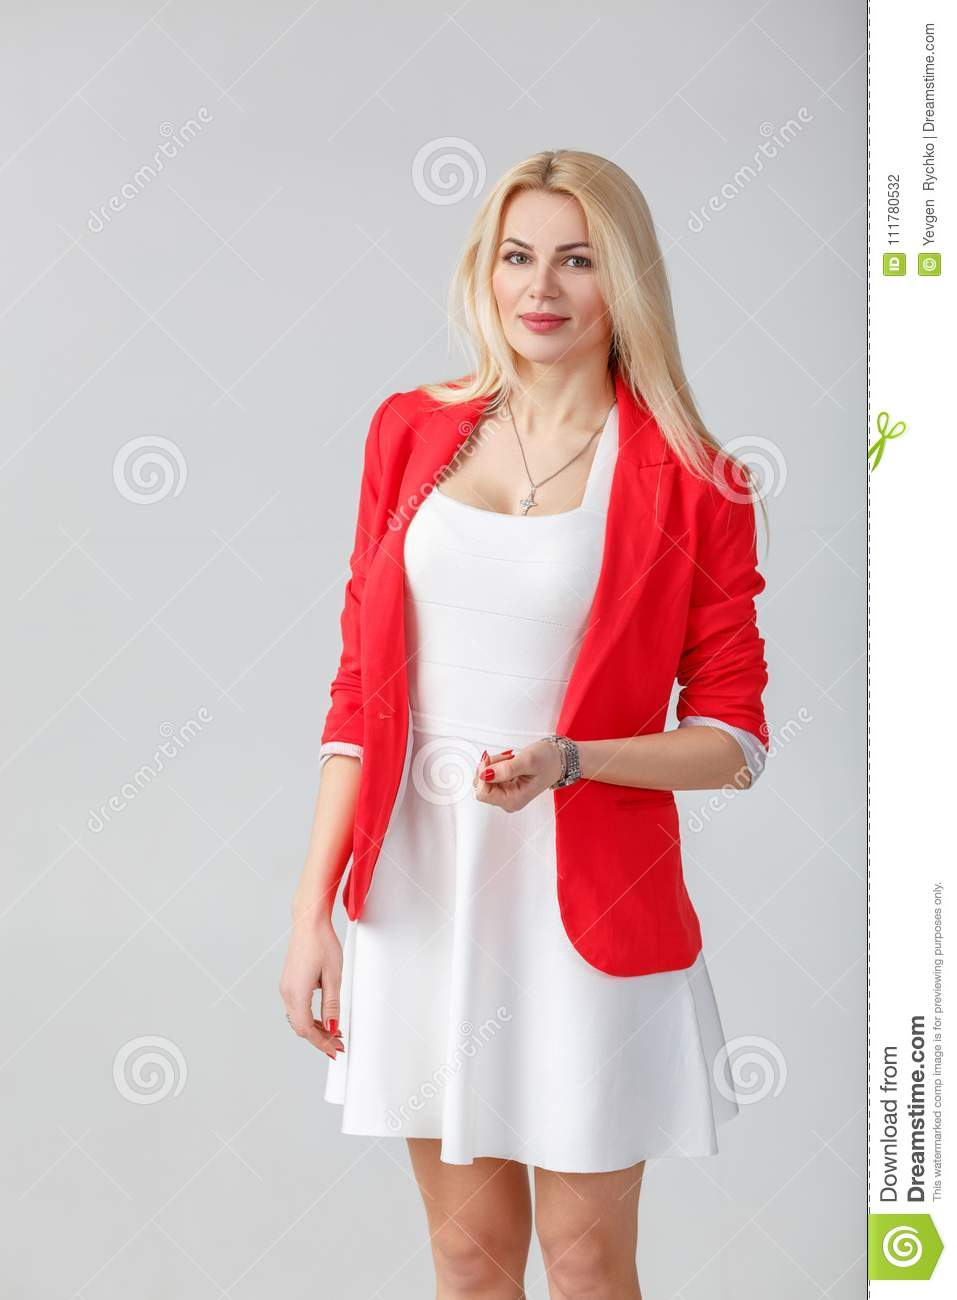 Woman in white dress and red jacket